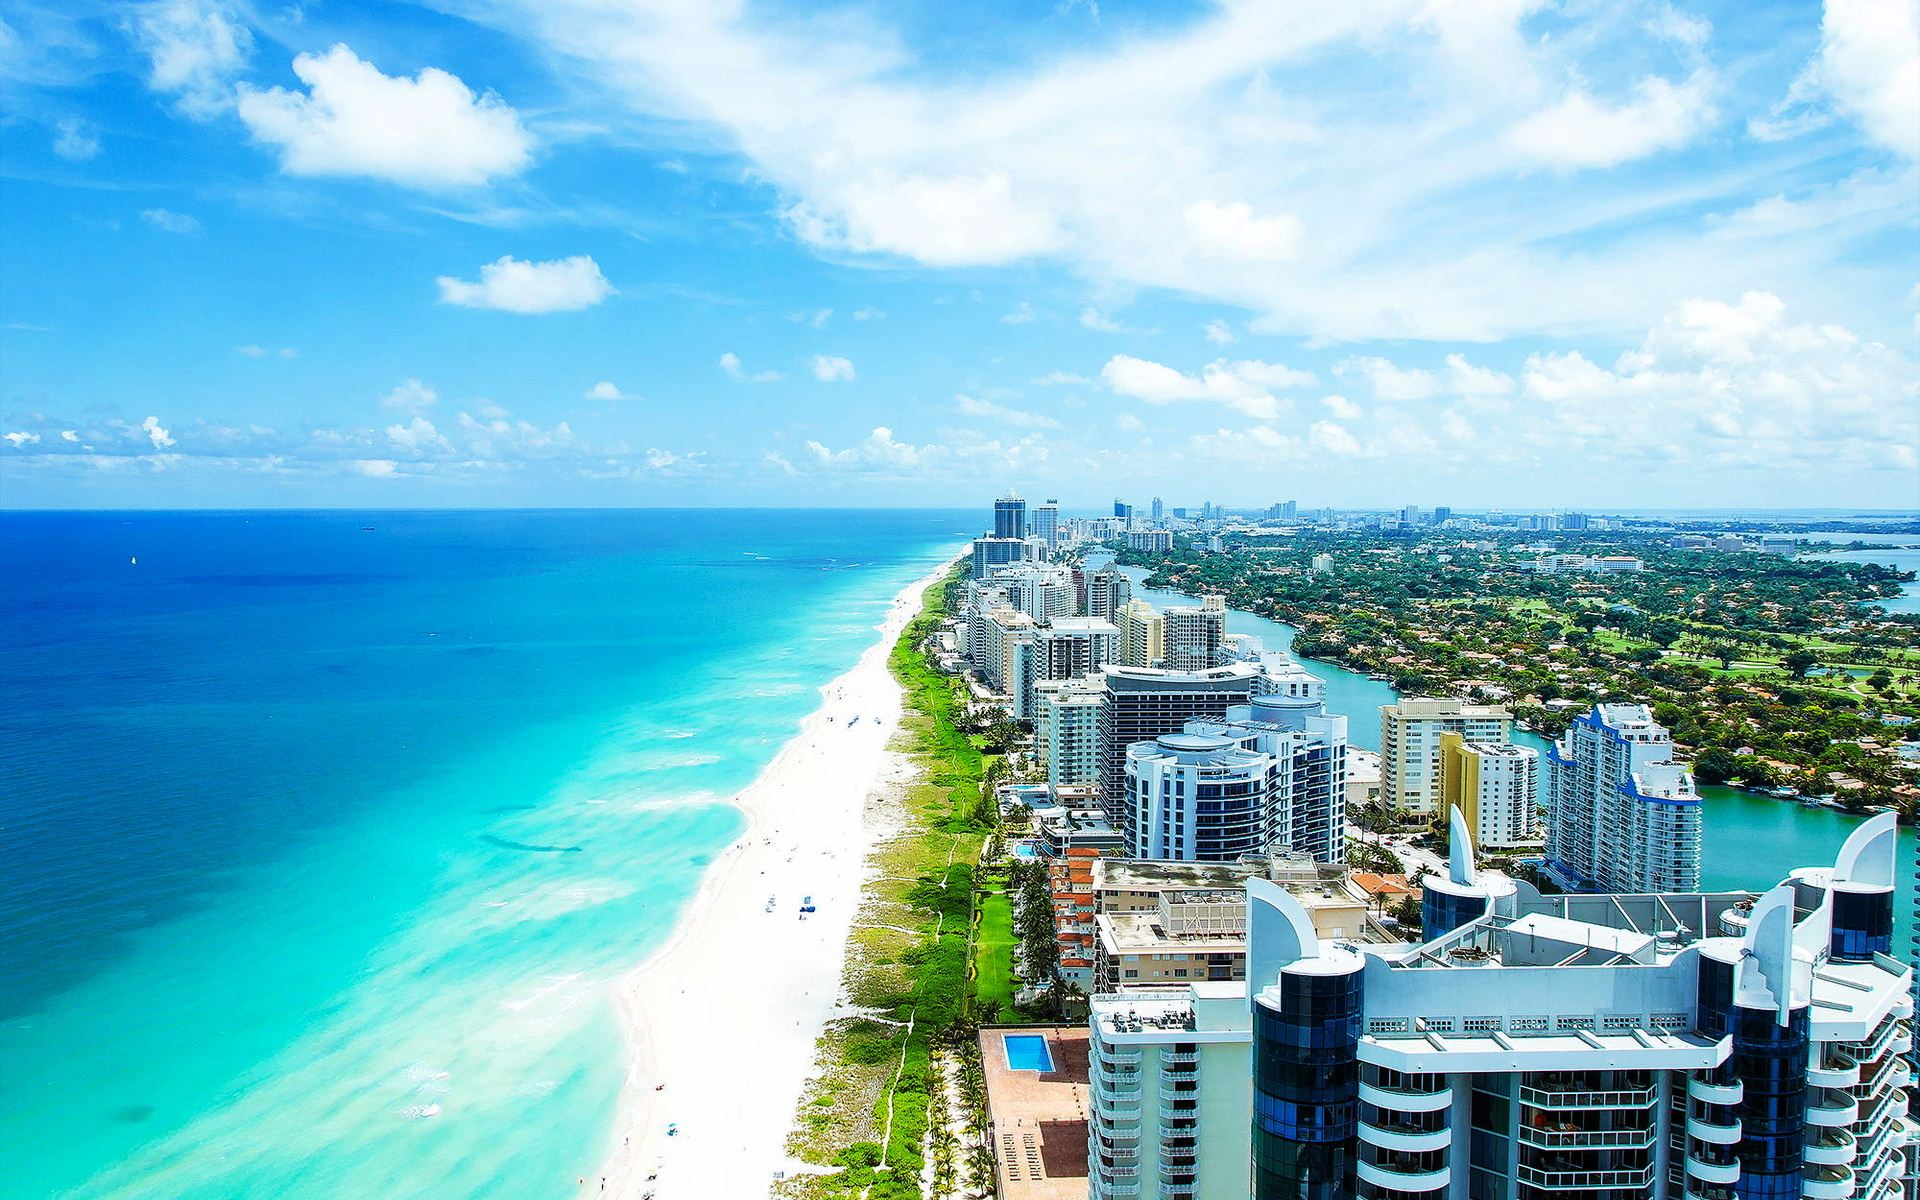 5001617-miami-beach-wallpapers.jpeg